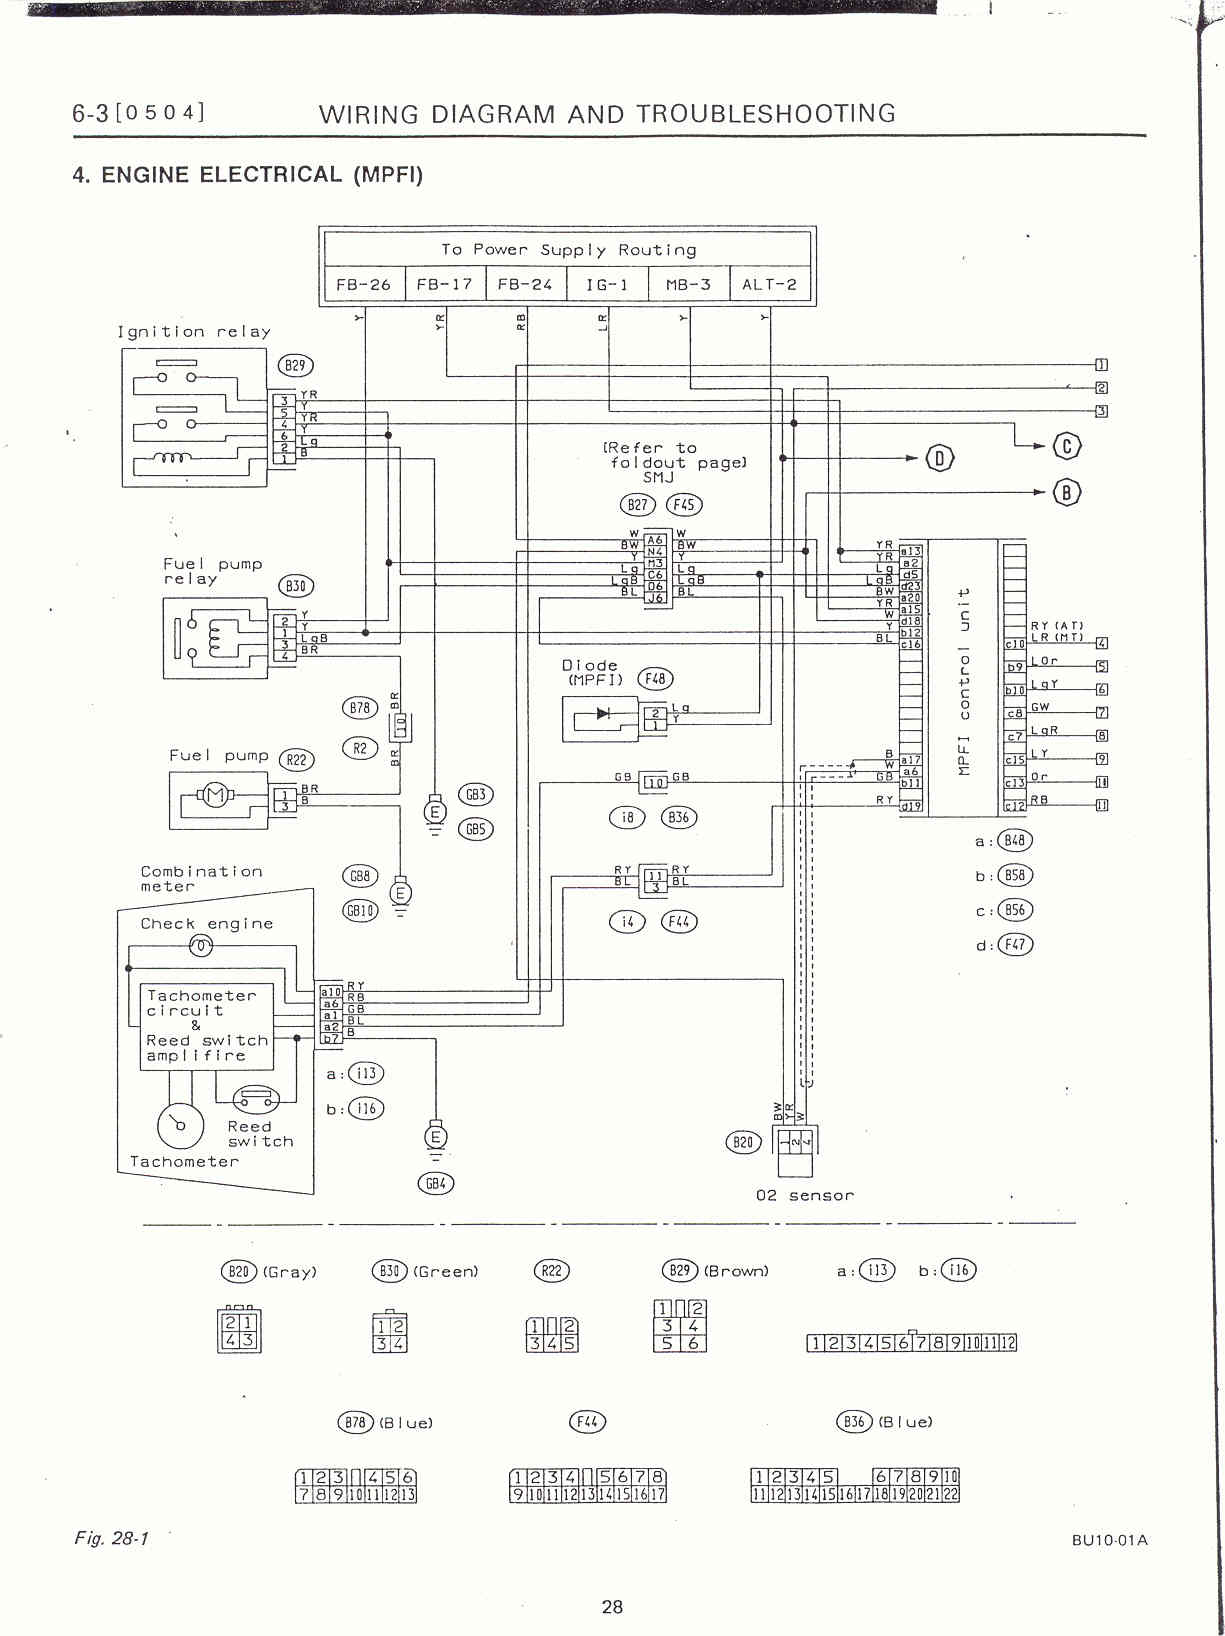 09 wrx engine wiring harness diagram wiring library rh 8 skriptoase de